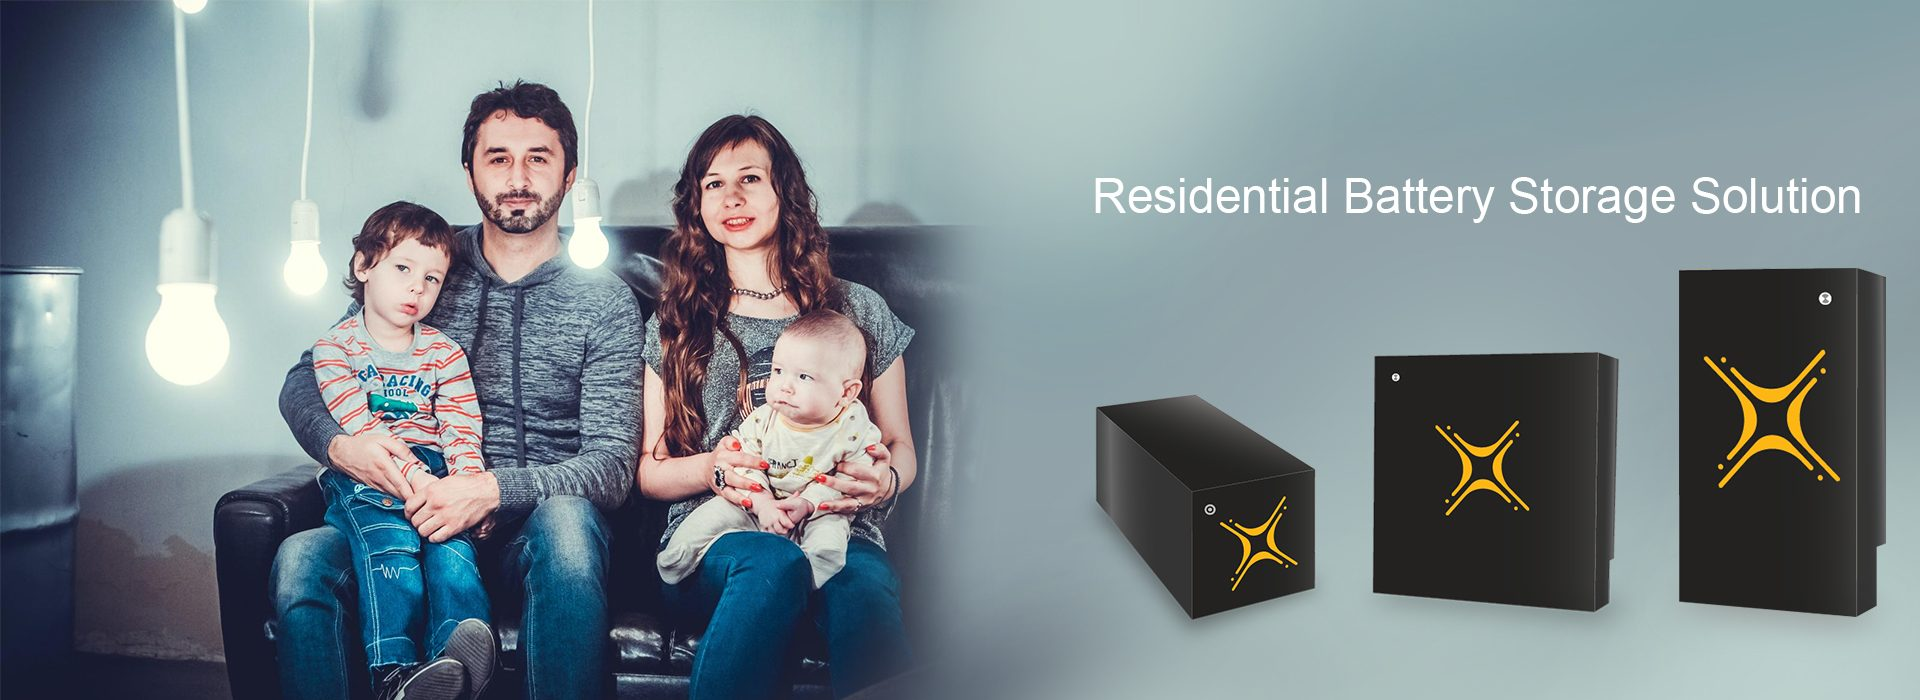 residential battery storage solution banner